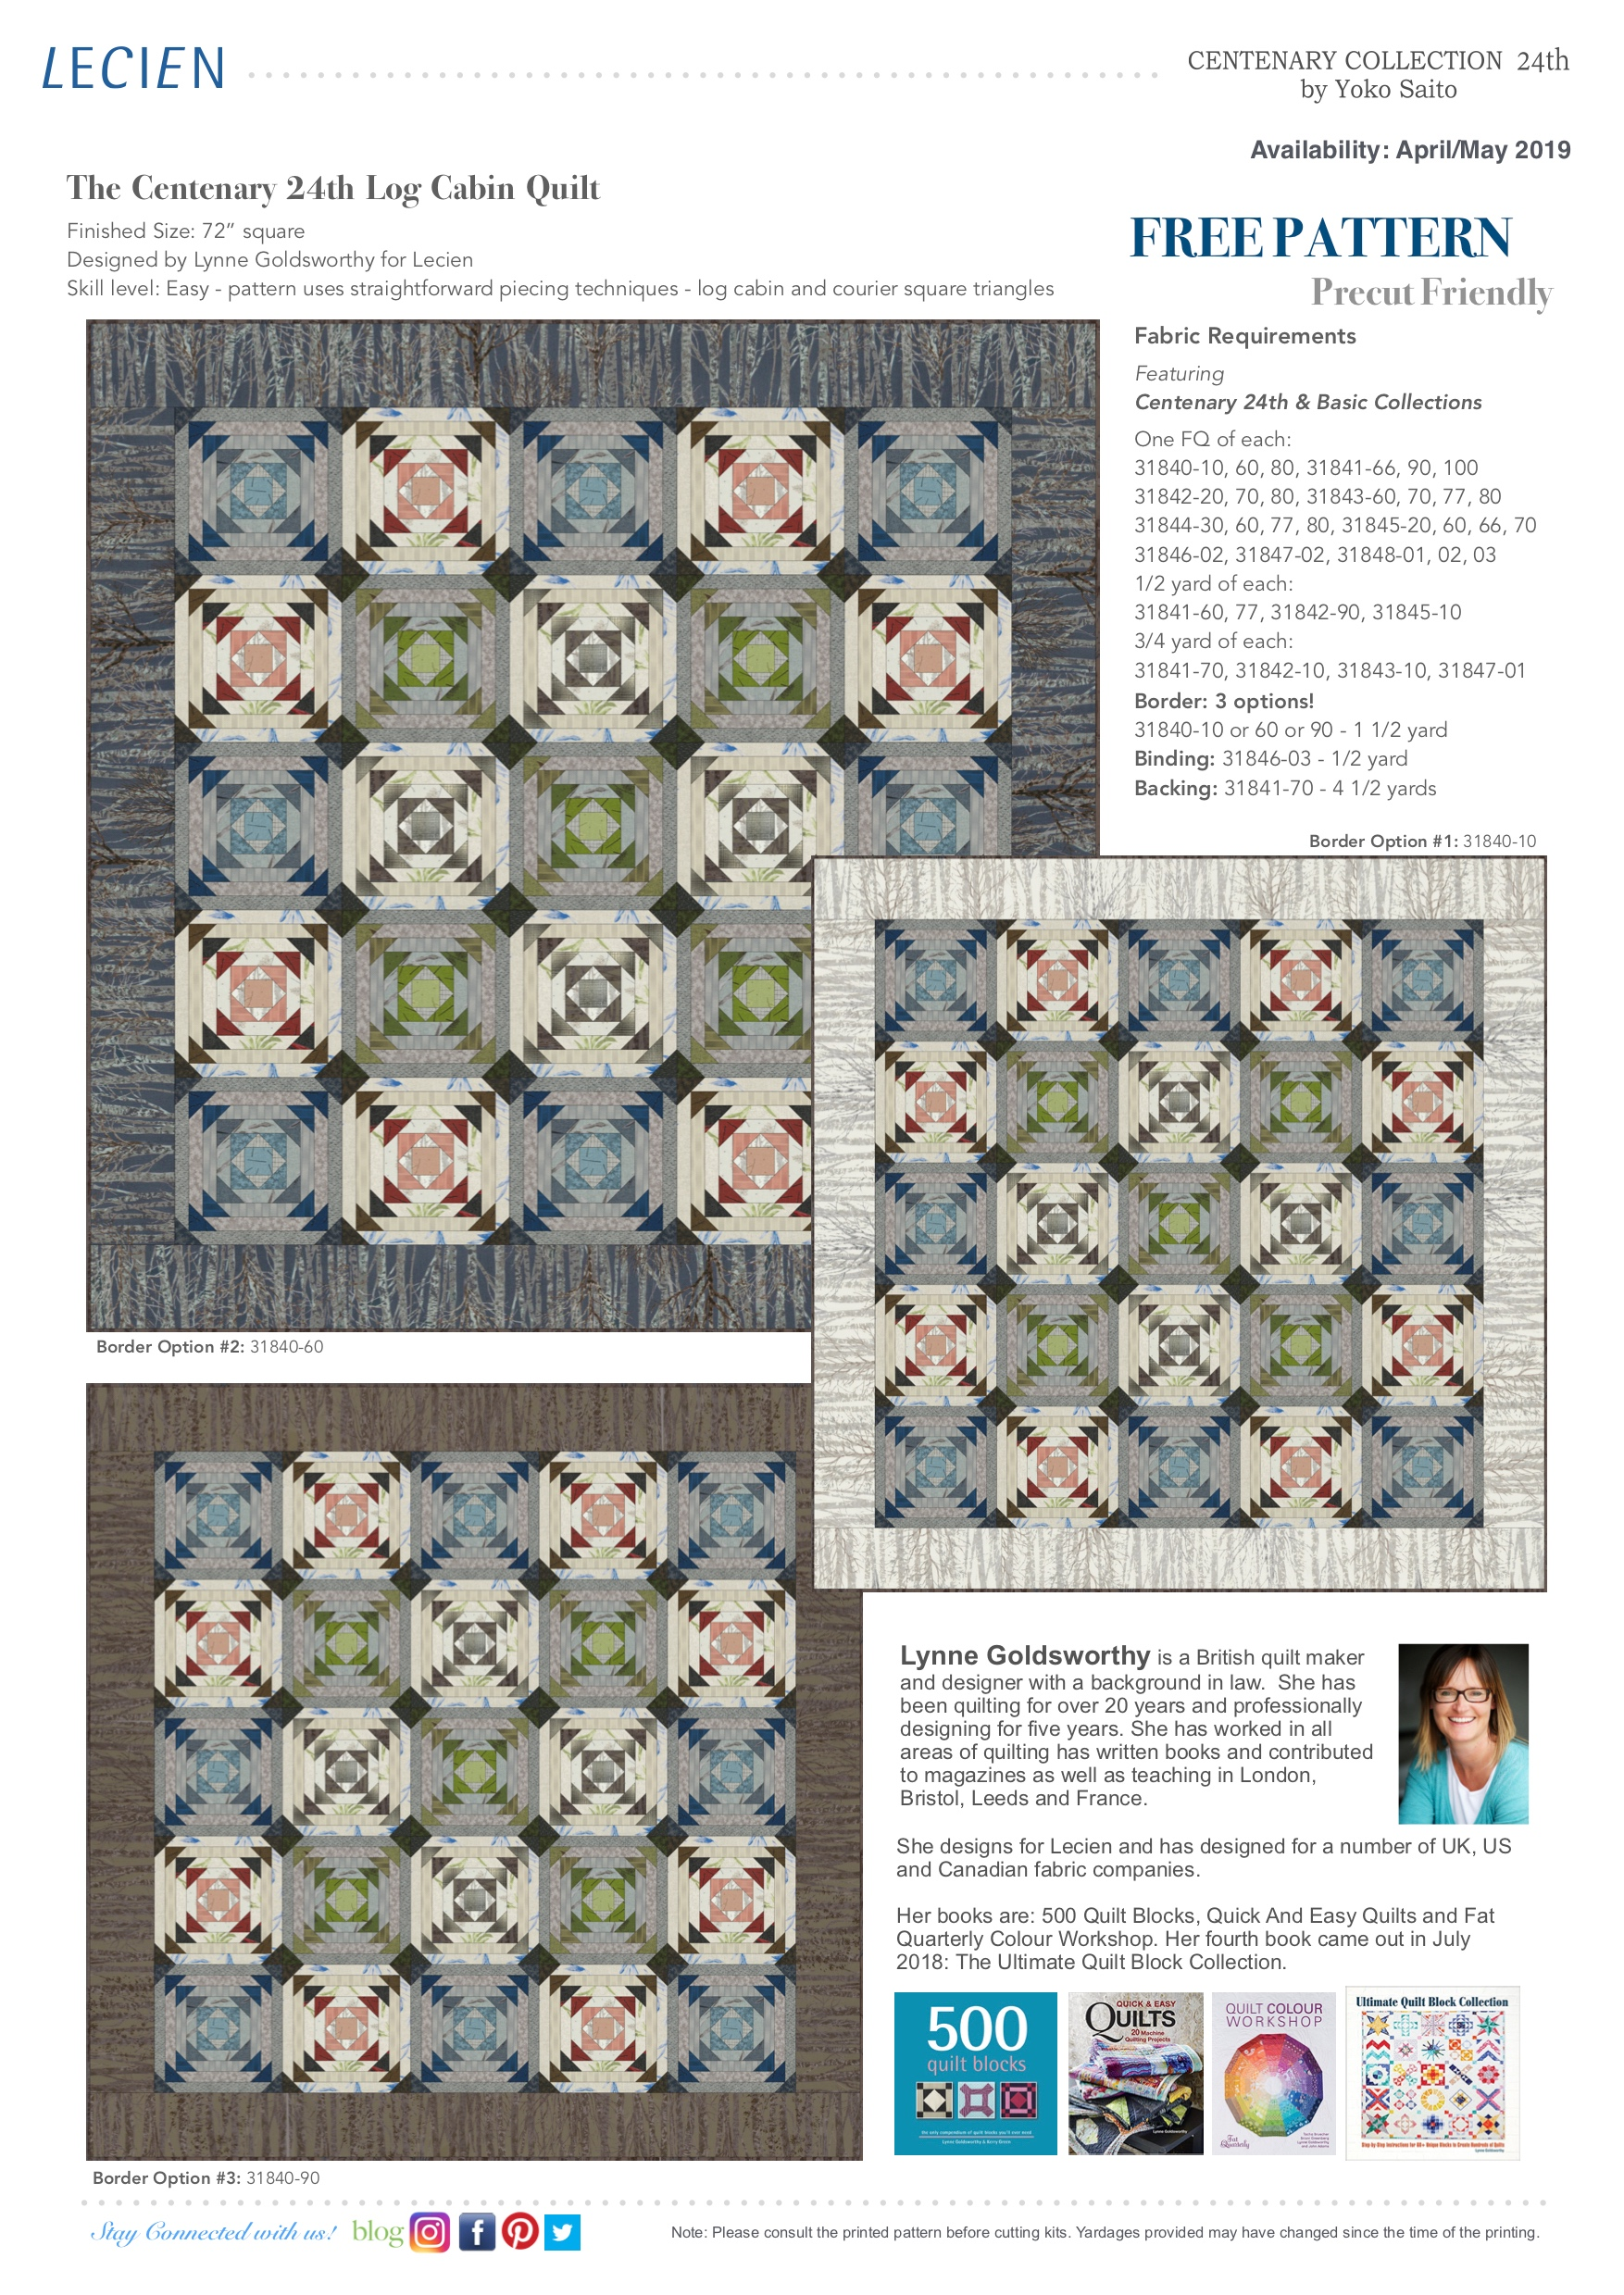 The Centenary 24th Log Cabin Quilt